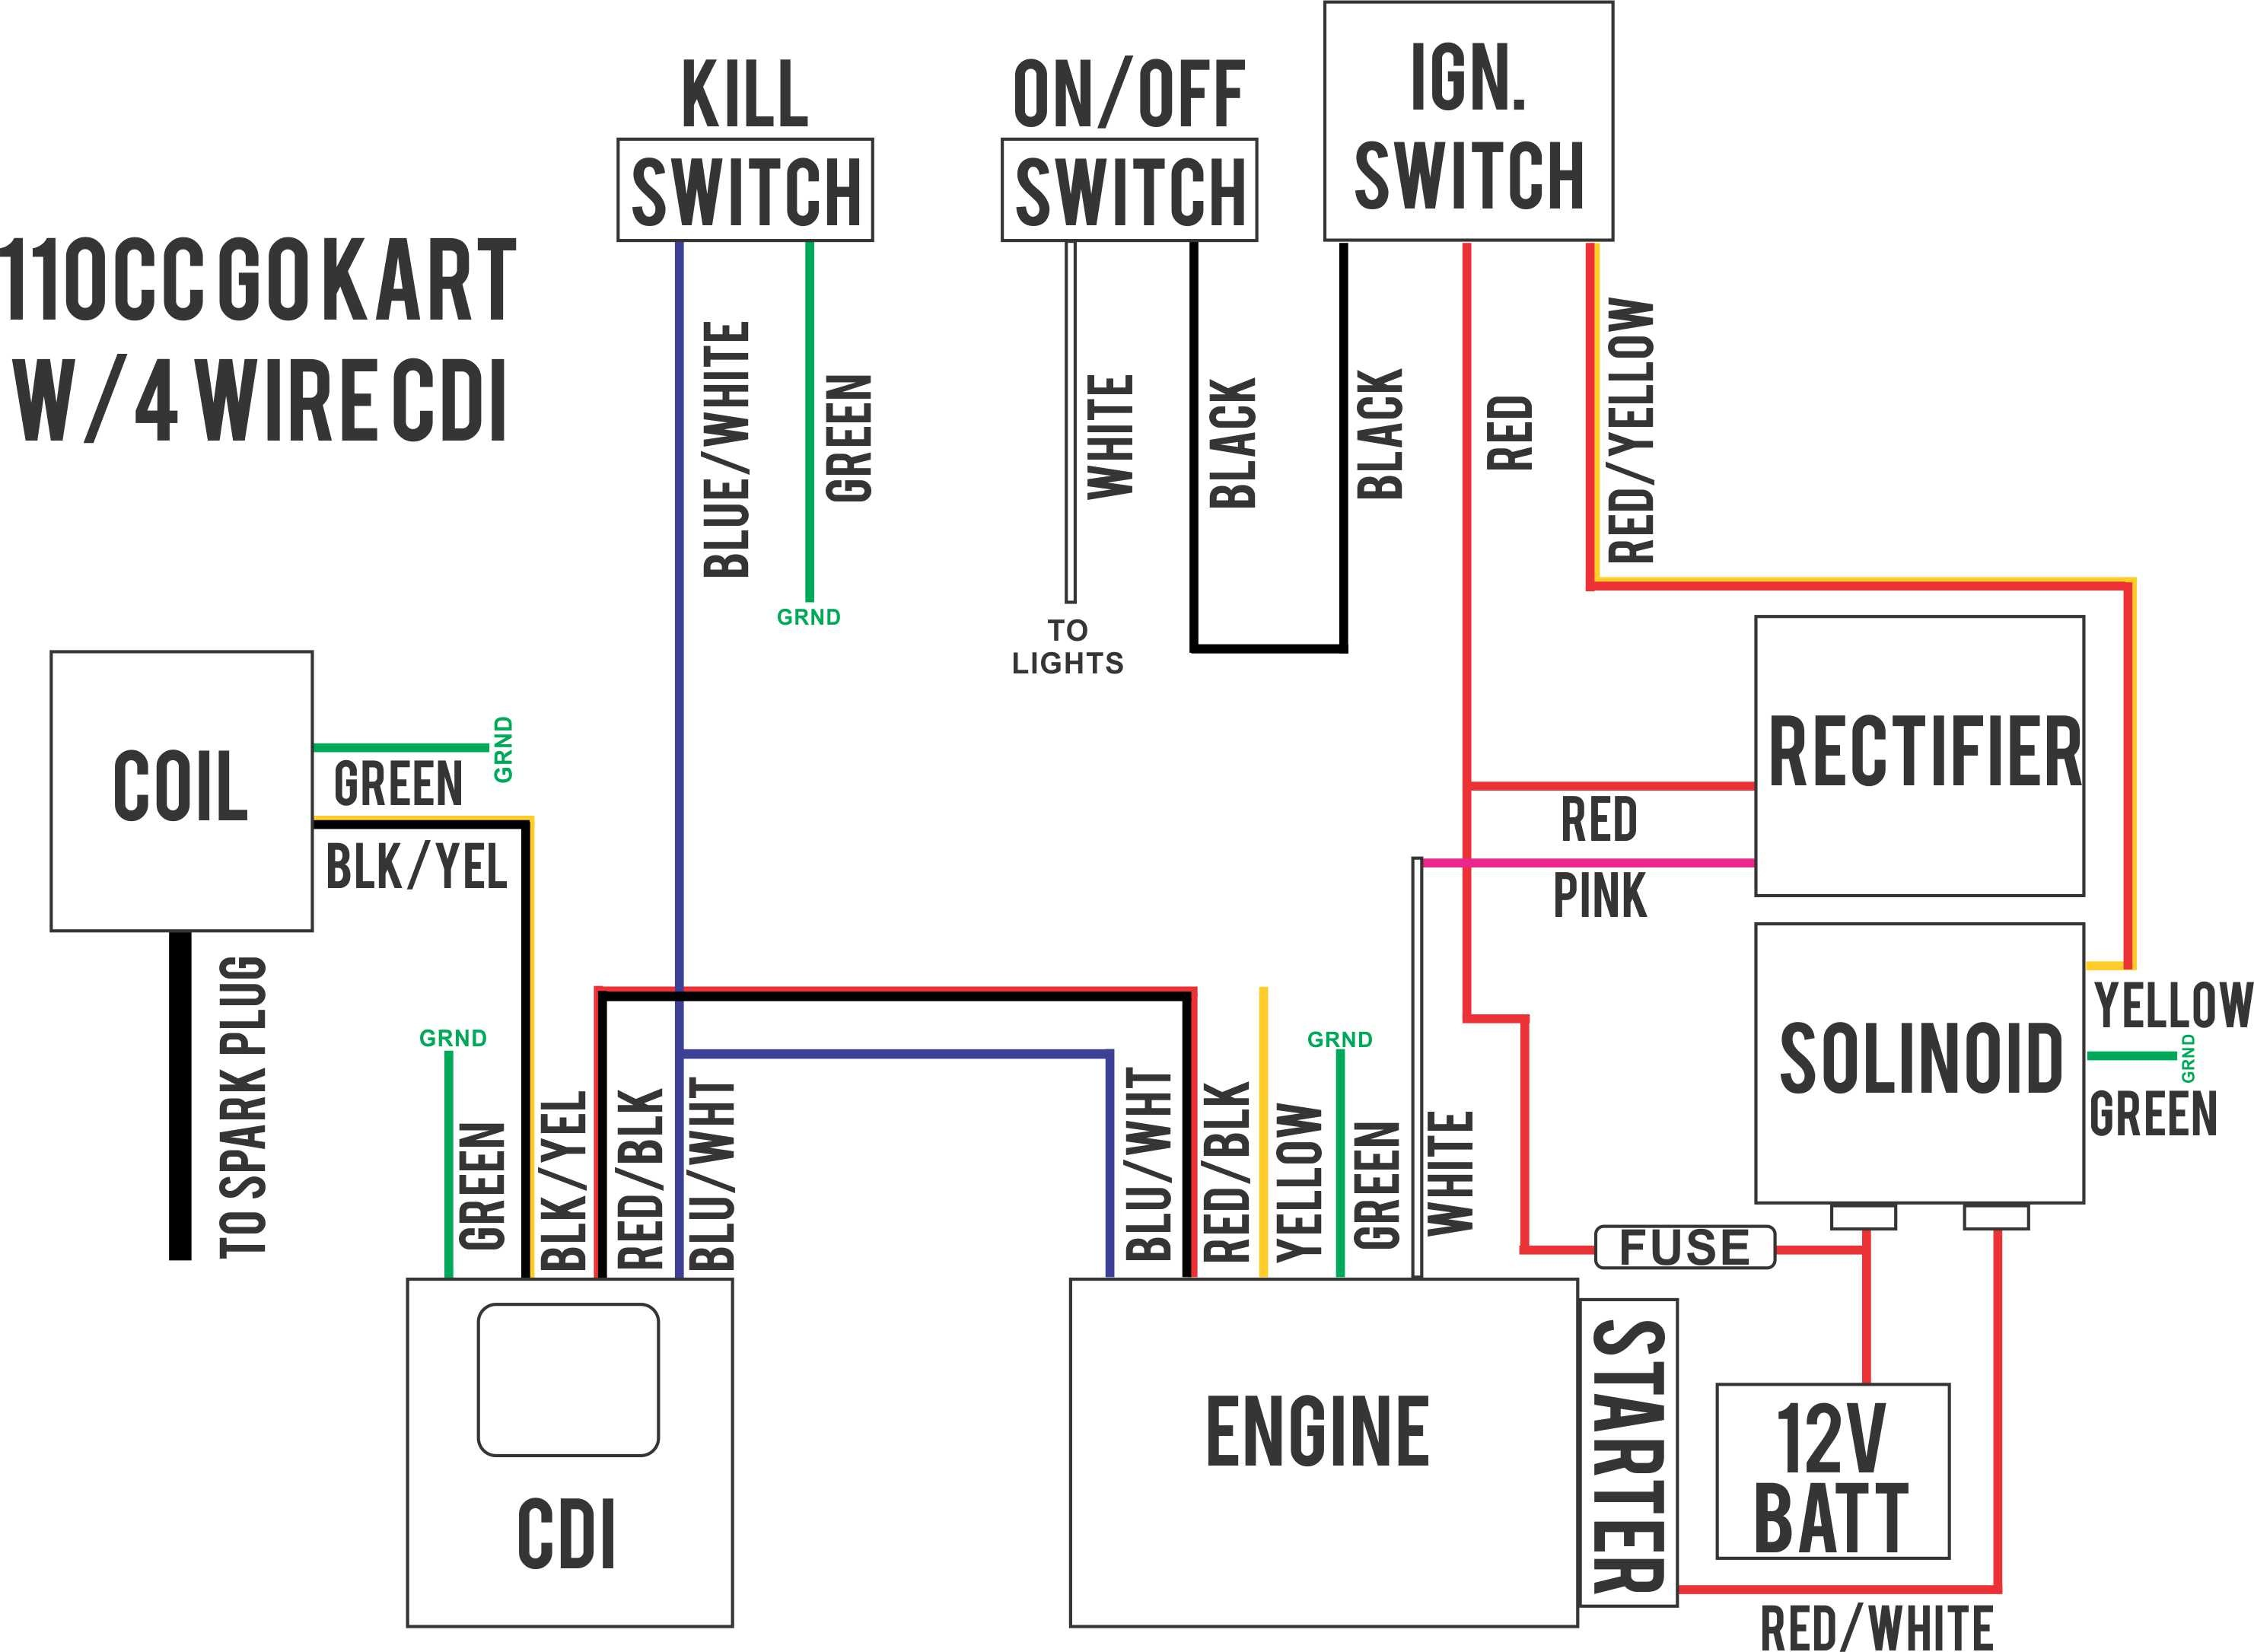 Wiring Diagram For Yamaha Big Bear 350 - Wiring Diagrams WD on yamaha grizzly wiring diagram, yamaha xt 500 wiring diagram, yamaha bear tracker 250 wiring diagram, suzuki king quad 700 wiring diagram, yamaha blaster wiring diagram, yamaha timberwolf 250 wiring diagram, yamaha kodiak 450 wiring diagram, yamaha rhino electrical diagram, yamaha banshee wiring diagram, yamaha rhino ignition wiring diagram, yamaha rhino engine diagram, yamaha bruin 250 wiring diagram, yamaha rhino 660 wiring diagram, yamaha big bear 400 wiring diagram, yamaha raptor wiring diagram, yamaha vino wiring diagram, yamaha ttr 125 wiring diagram, yamaha fz6r wiring diagram, yamaha big bear 350 wiring diagram, yamaha rhino 450 wiring diagram,